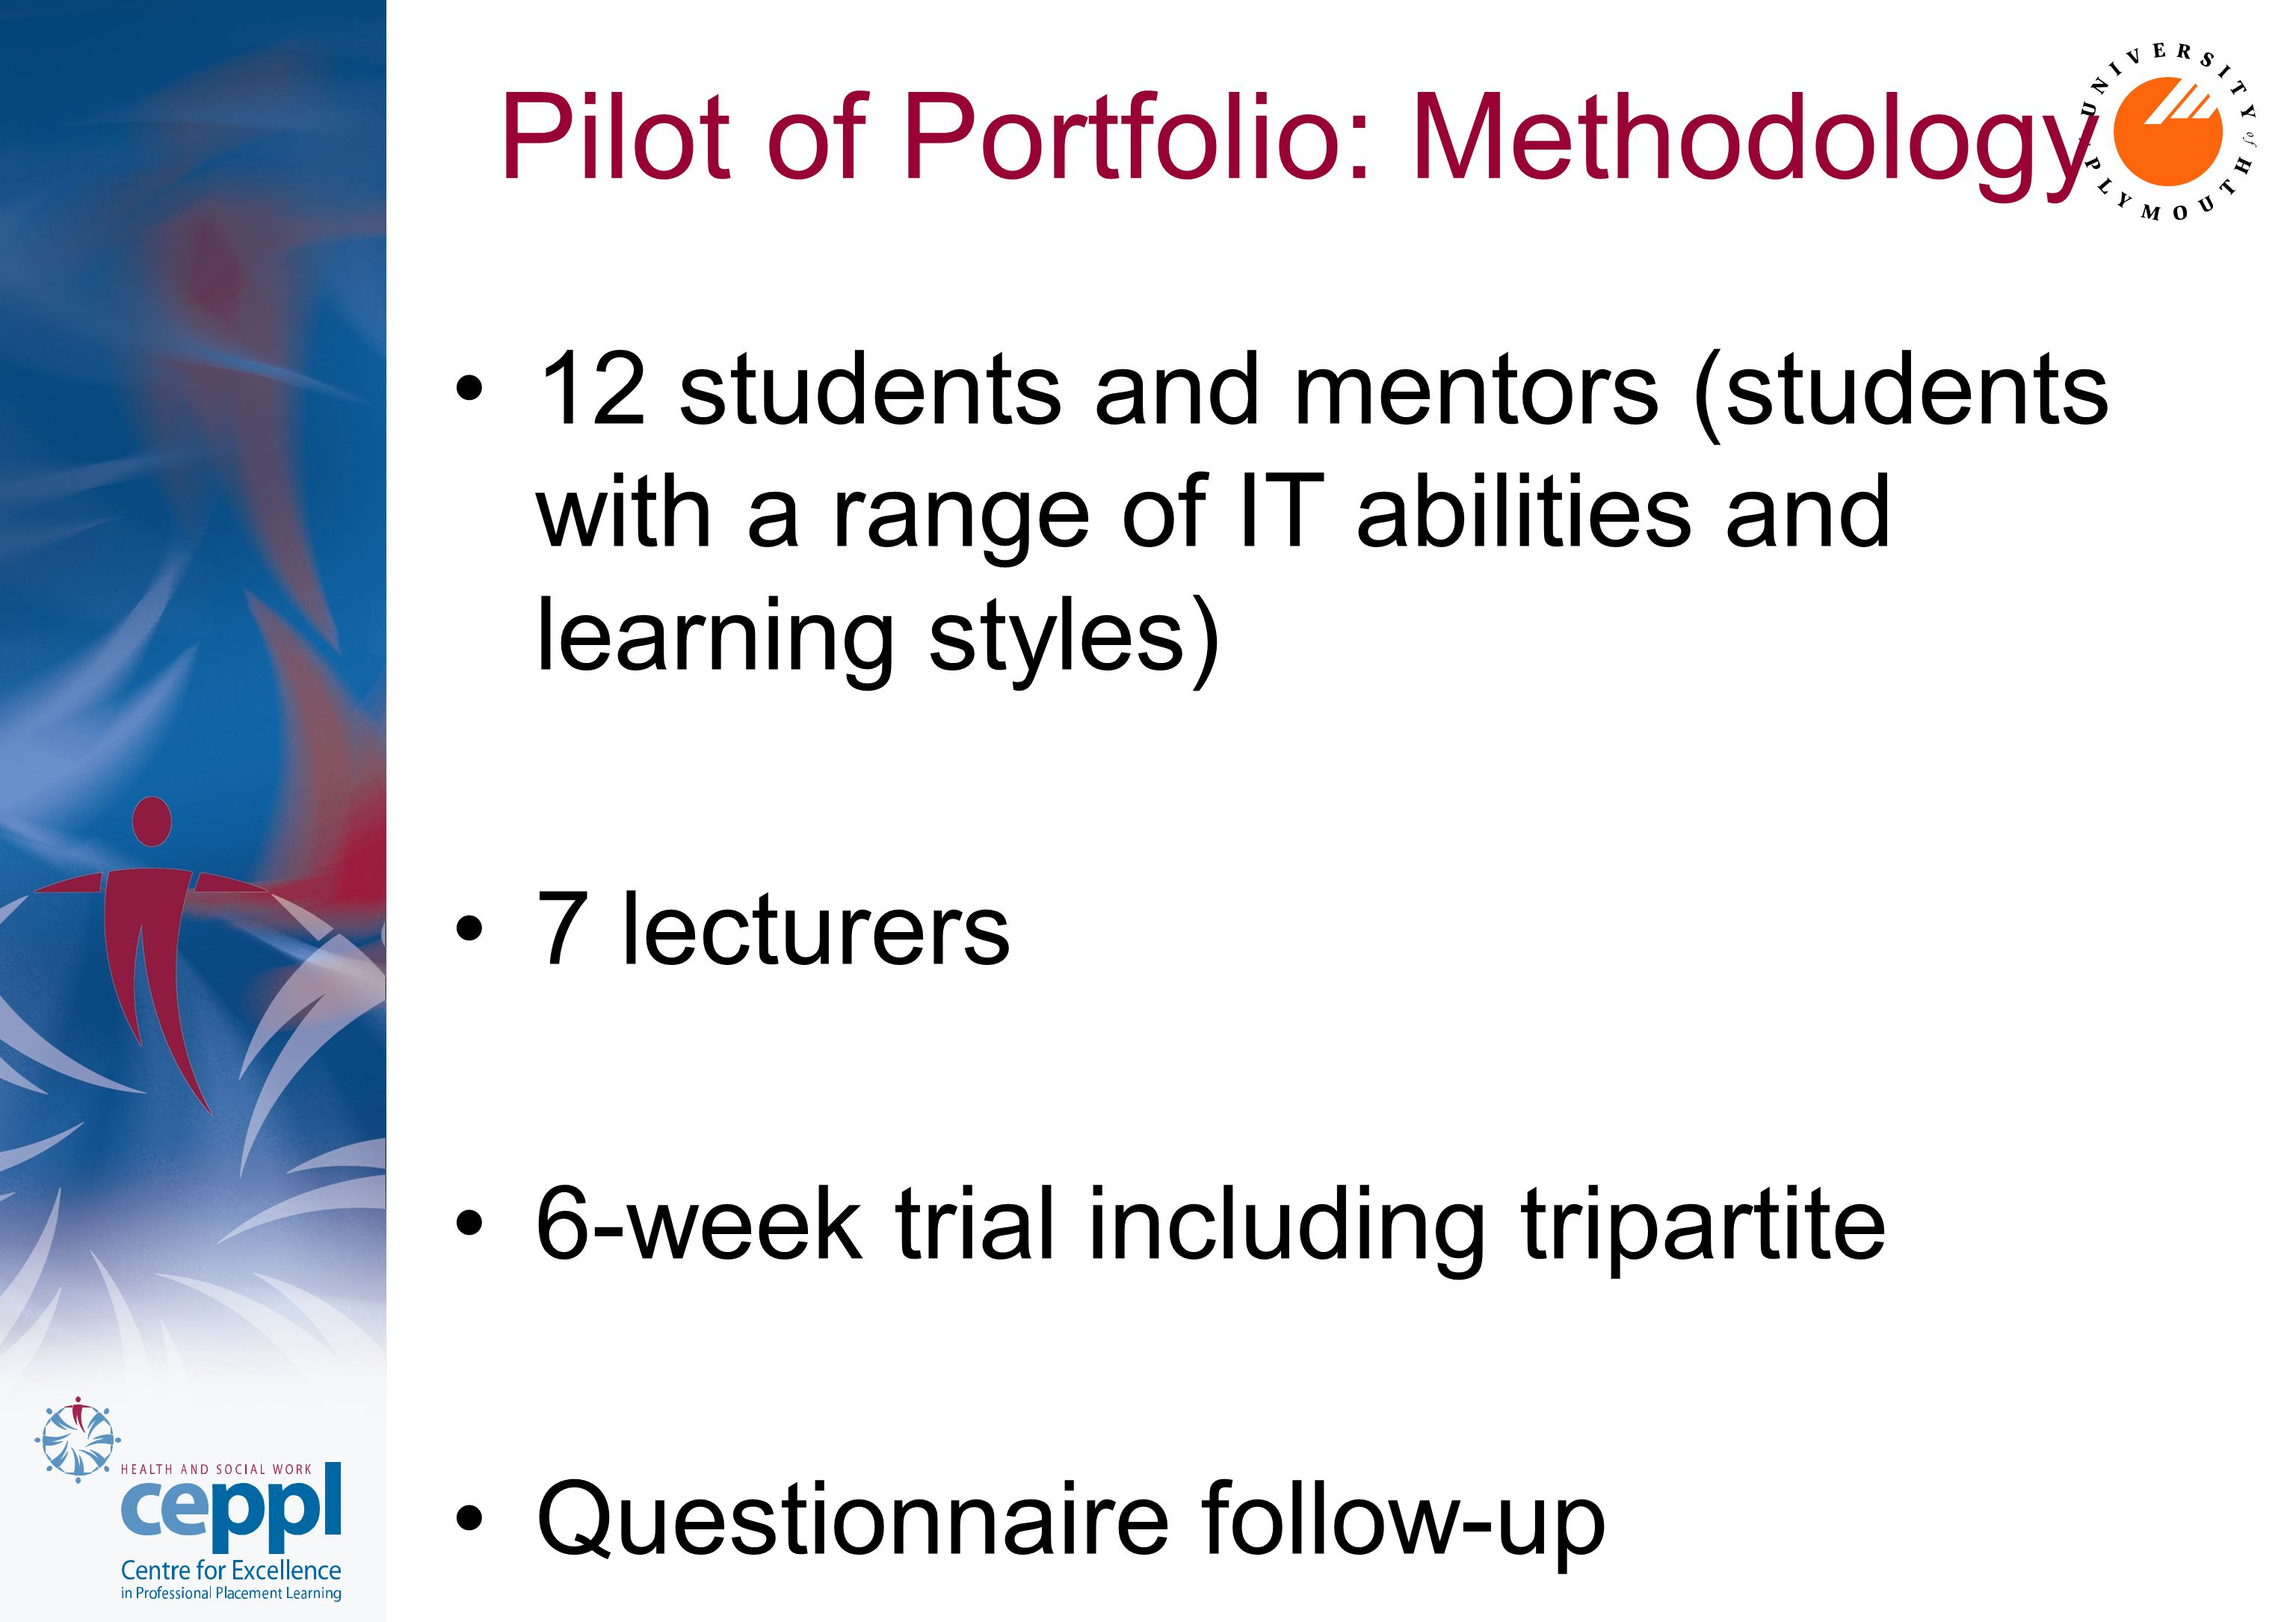 Pilot of Portfolio: Methodology 12 students and mentors (students with a range of IT abilities and learning styles) 7 lecturers 6-week trial including tripartite Questionnaire follow-up